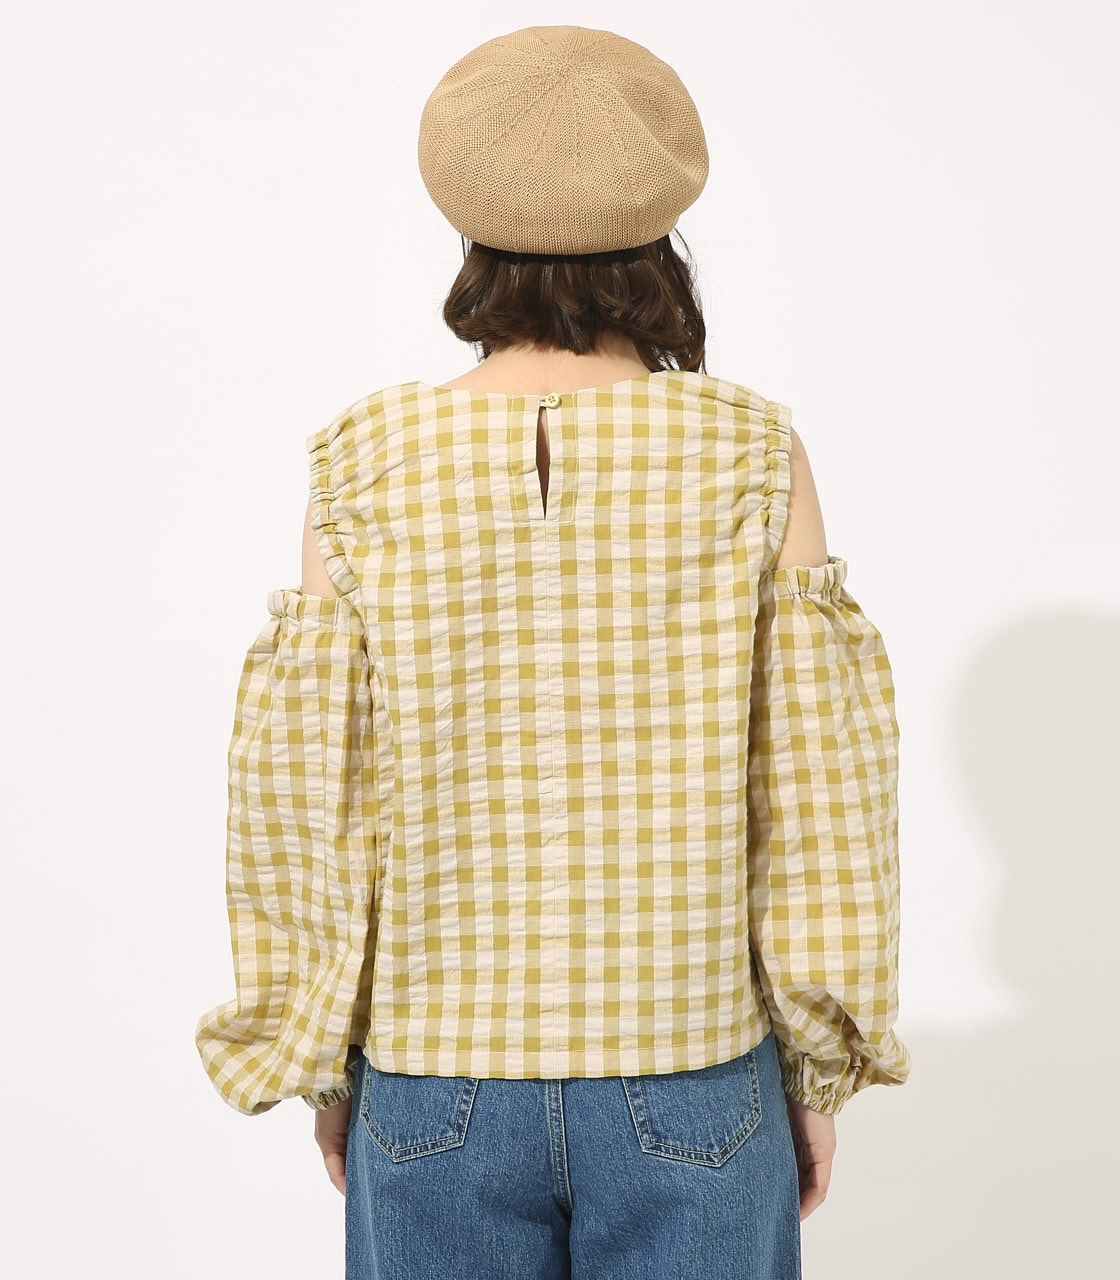 GINGHAM OPEN SHOULDER TOPS 【MOOK49掲載 90053】 詳細画像 柄LIME 6